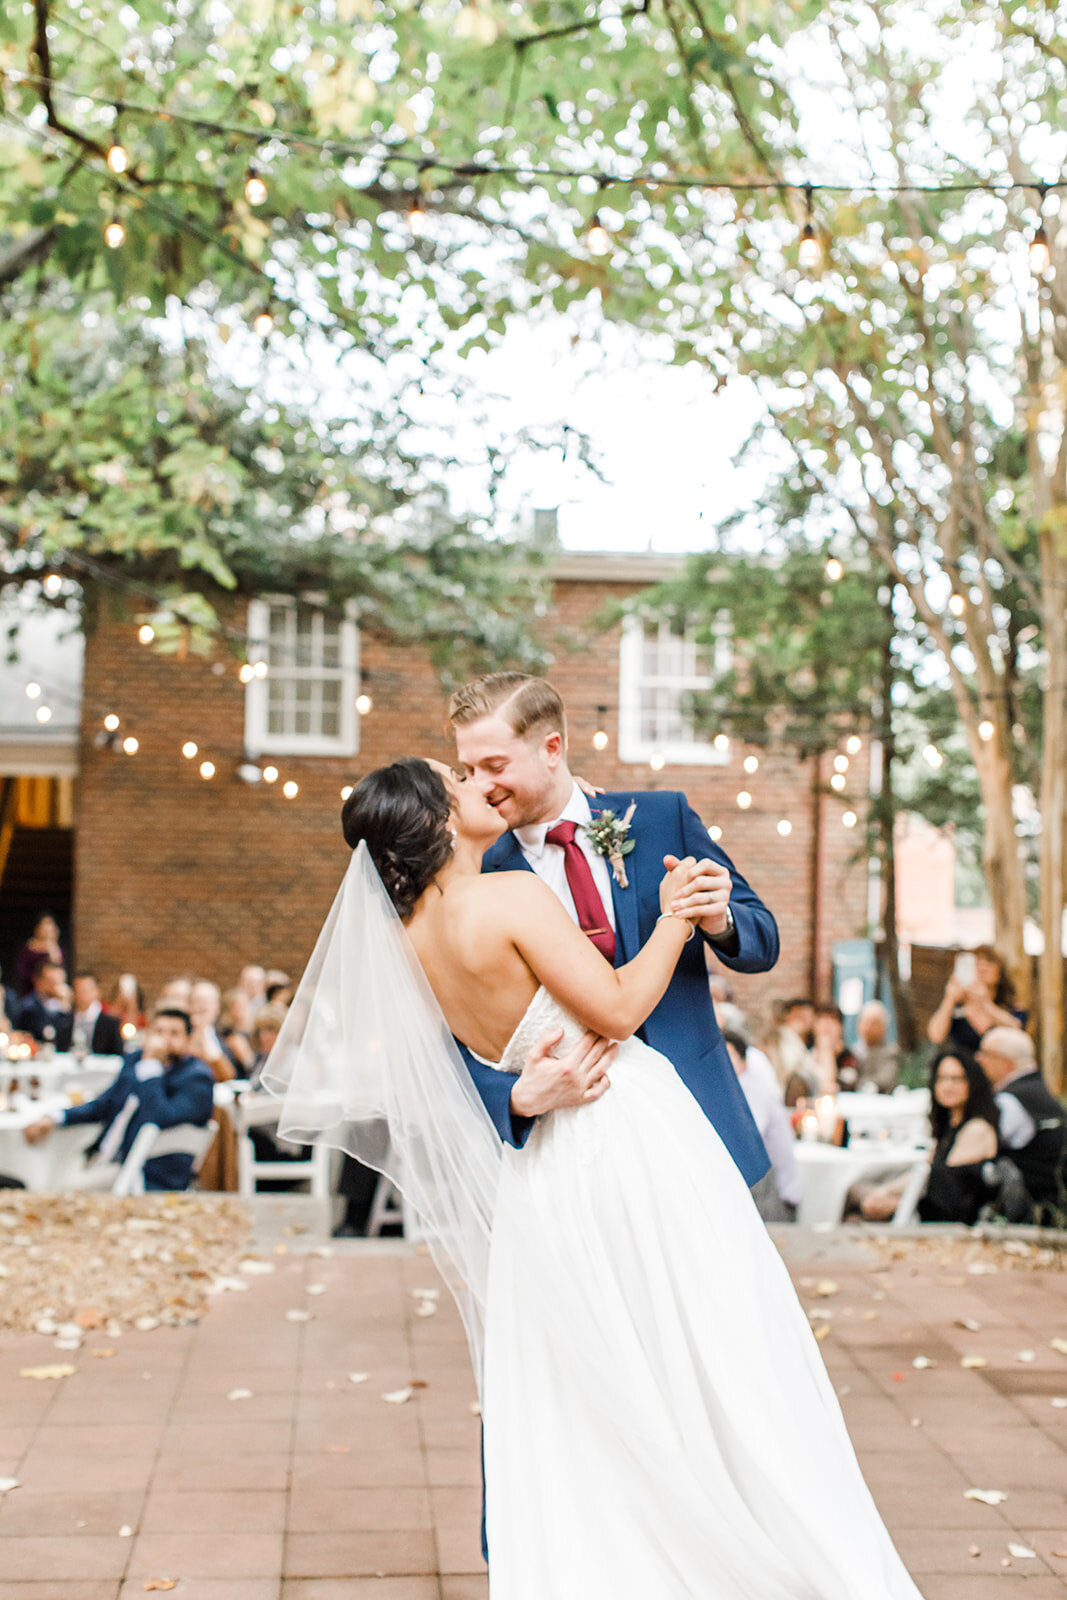 Virginia Wedding Photography at Linden Row Inn 2